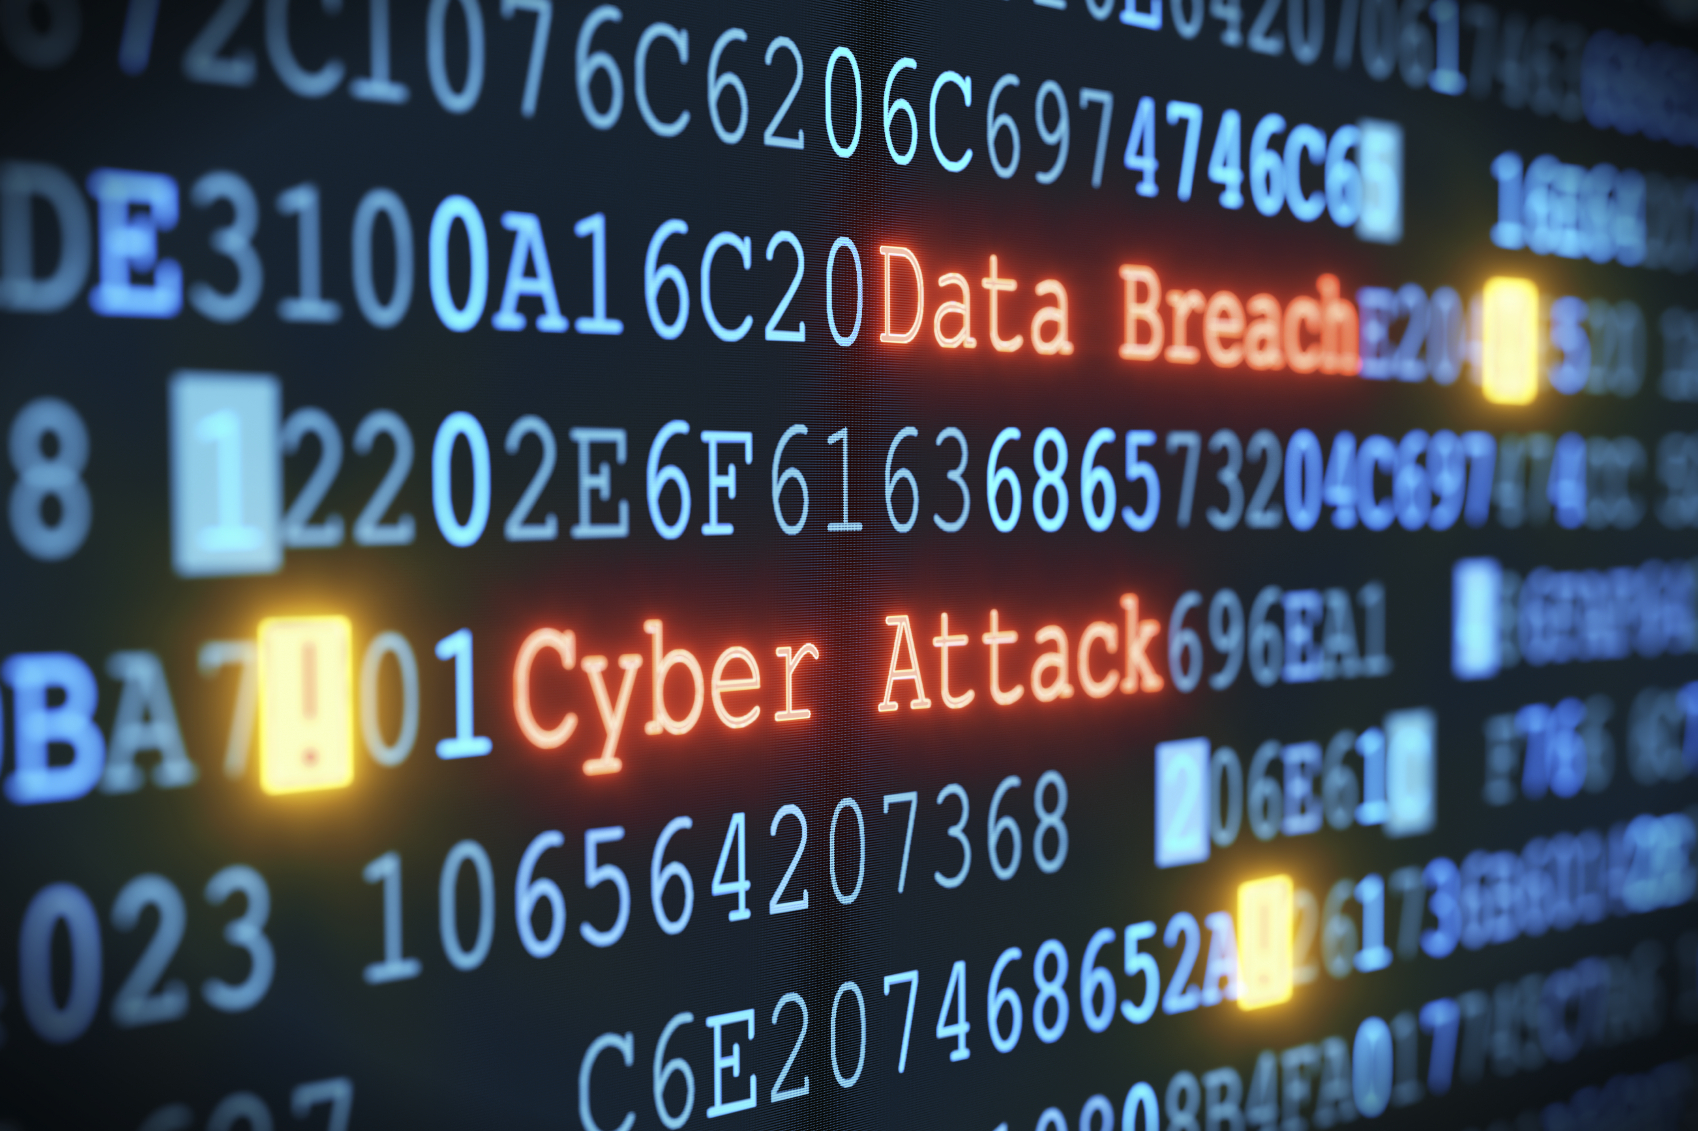 Cybersecurity Is About More Than Reacting to Attacks - IT Security ...